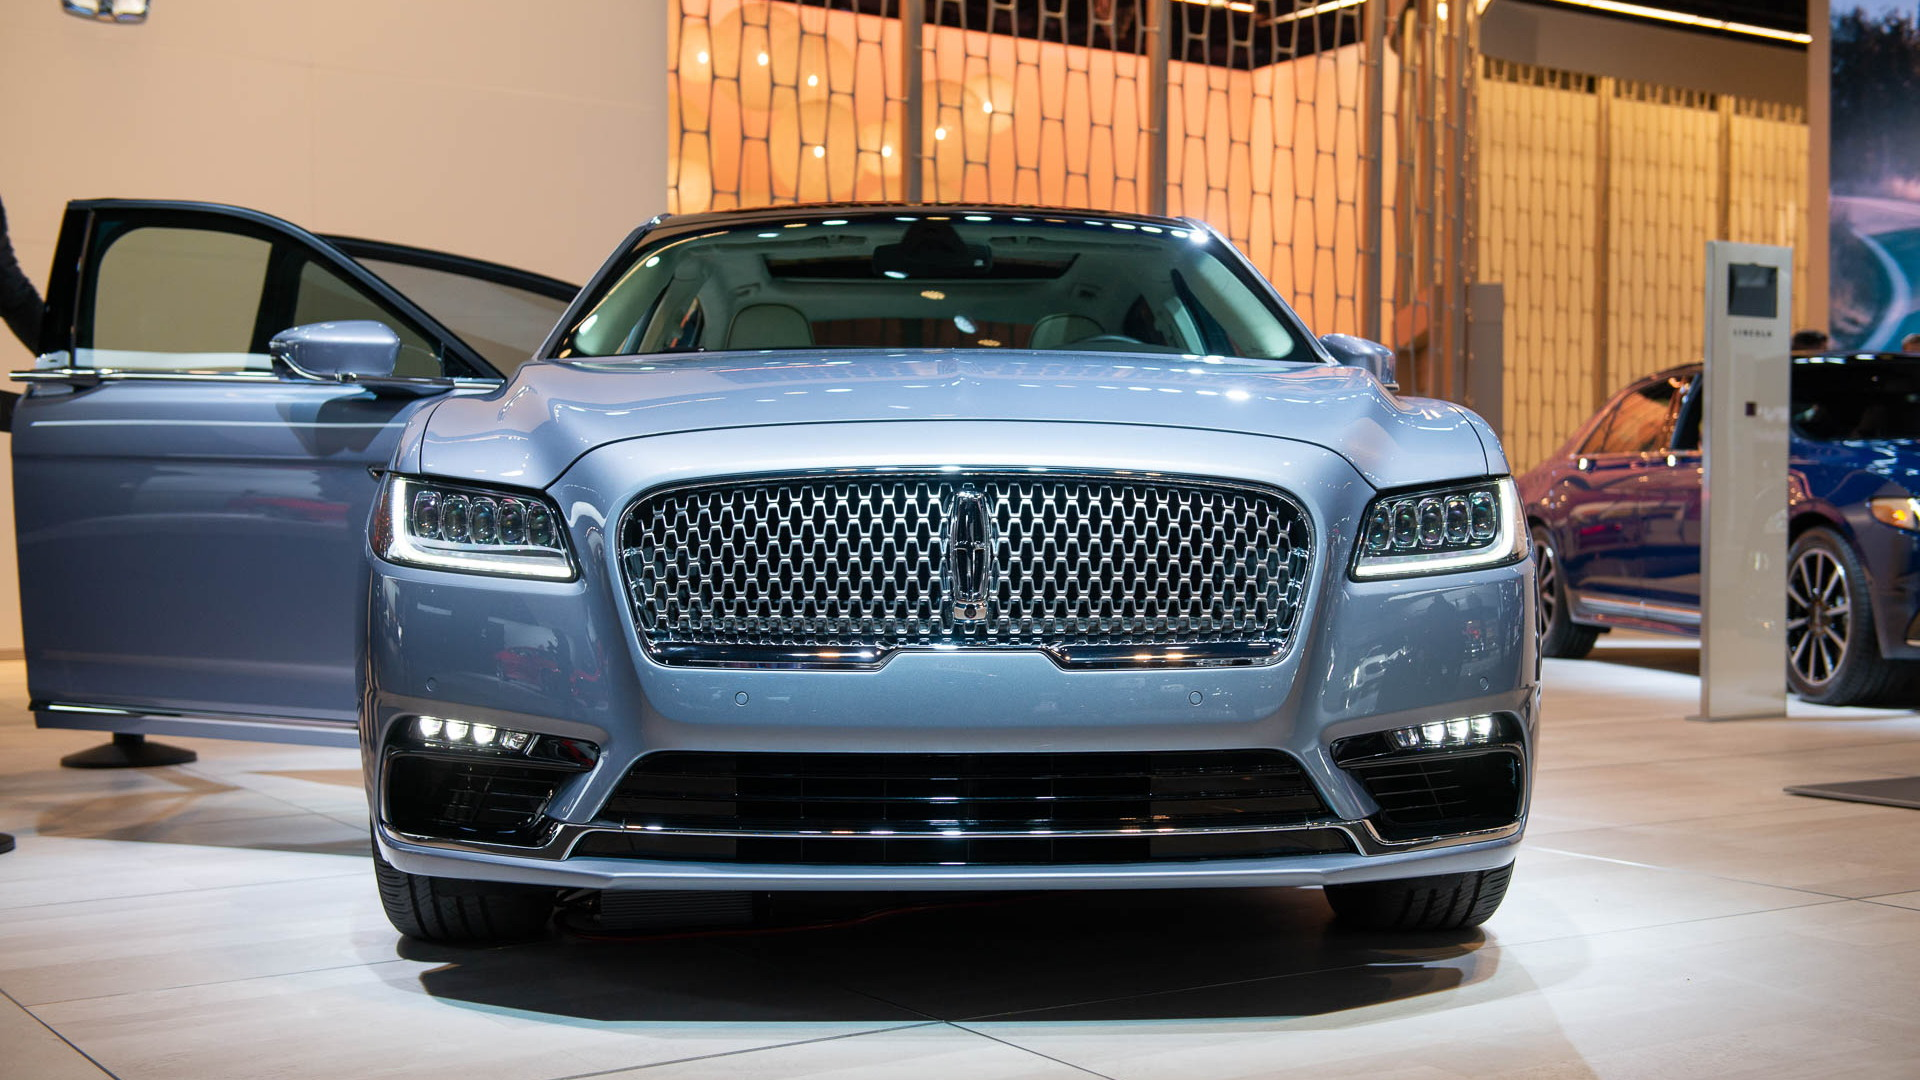 2019 Lincoln Continental Coach Edition, 2019 Detroit auto show